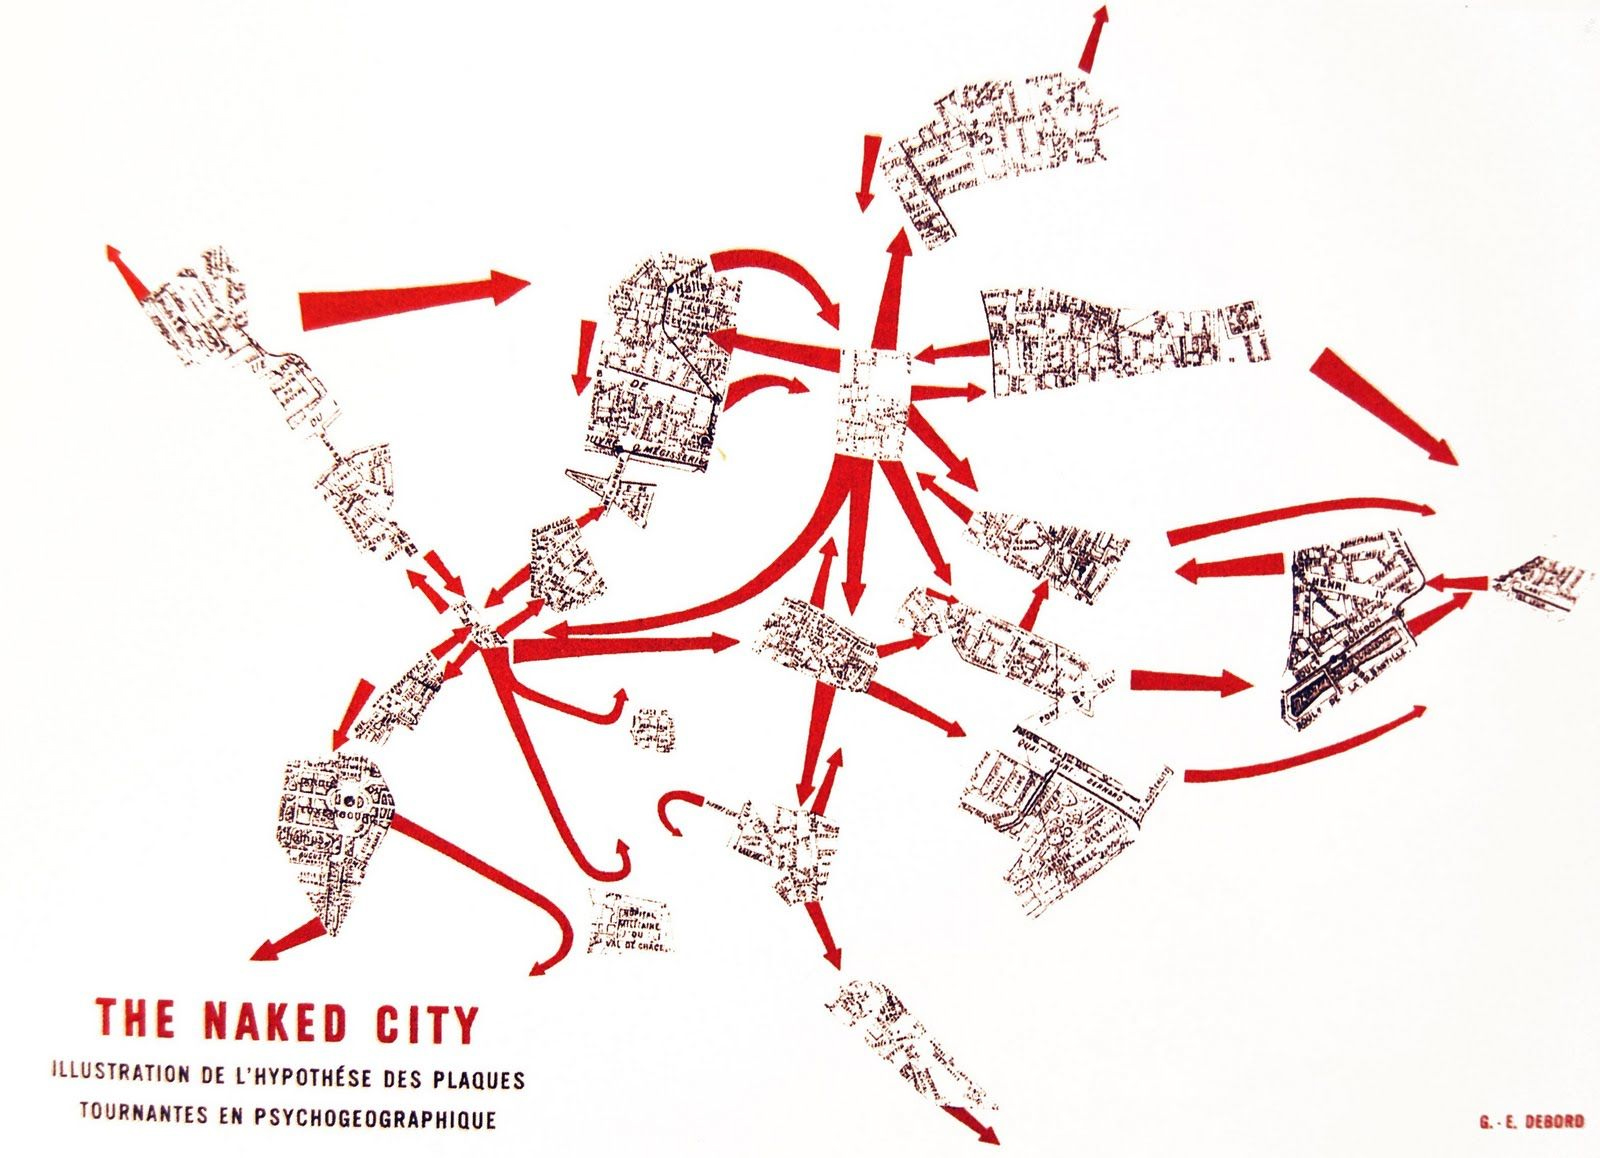 Fig 3 - Dubord - The Naked City